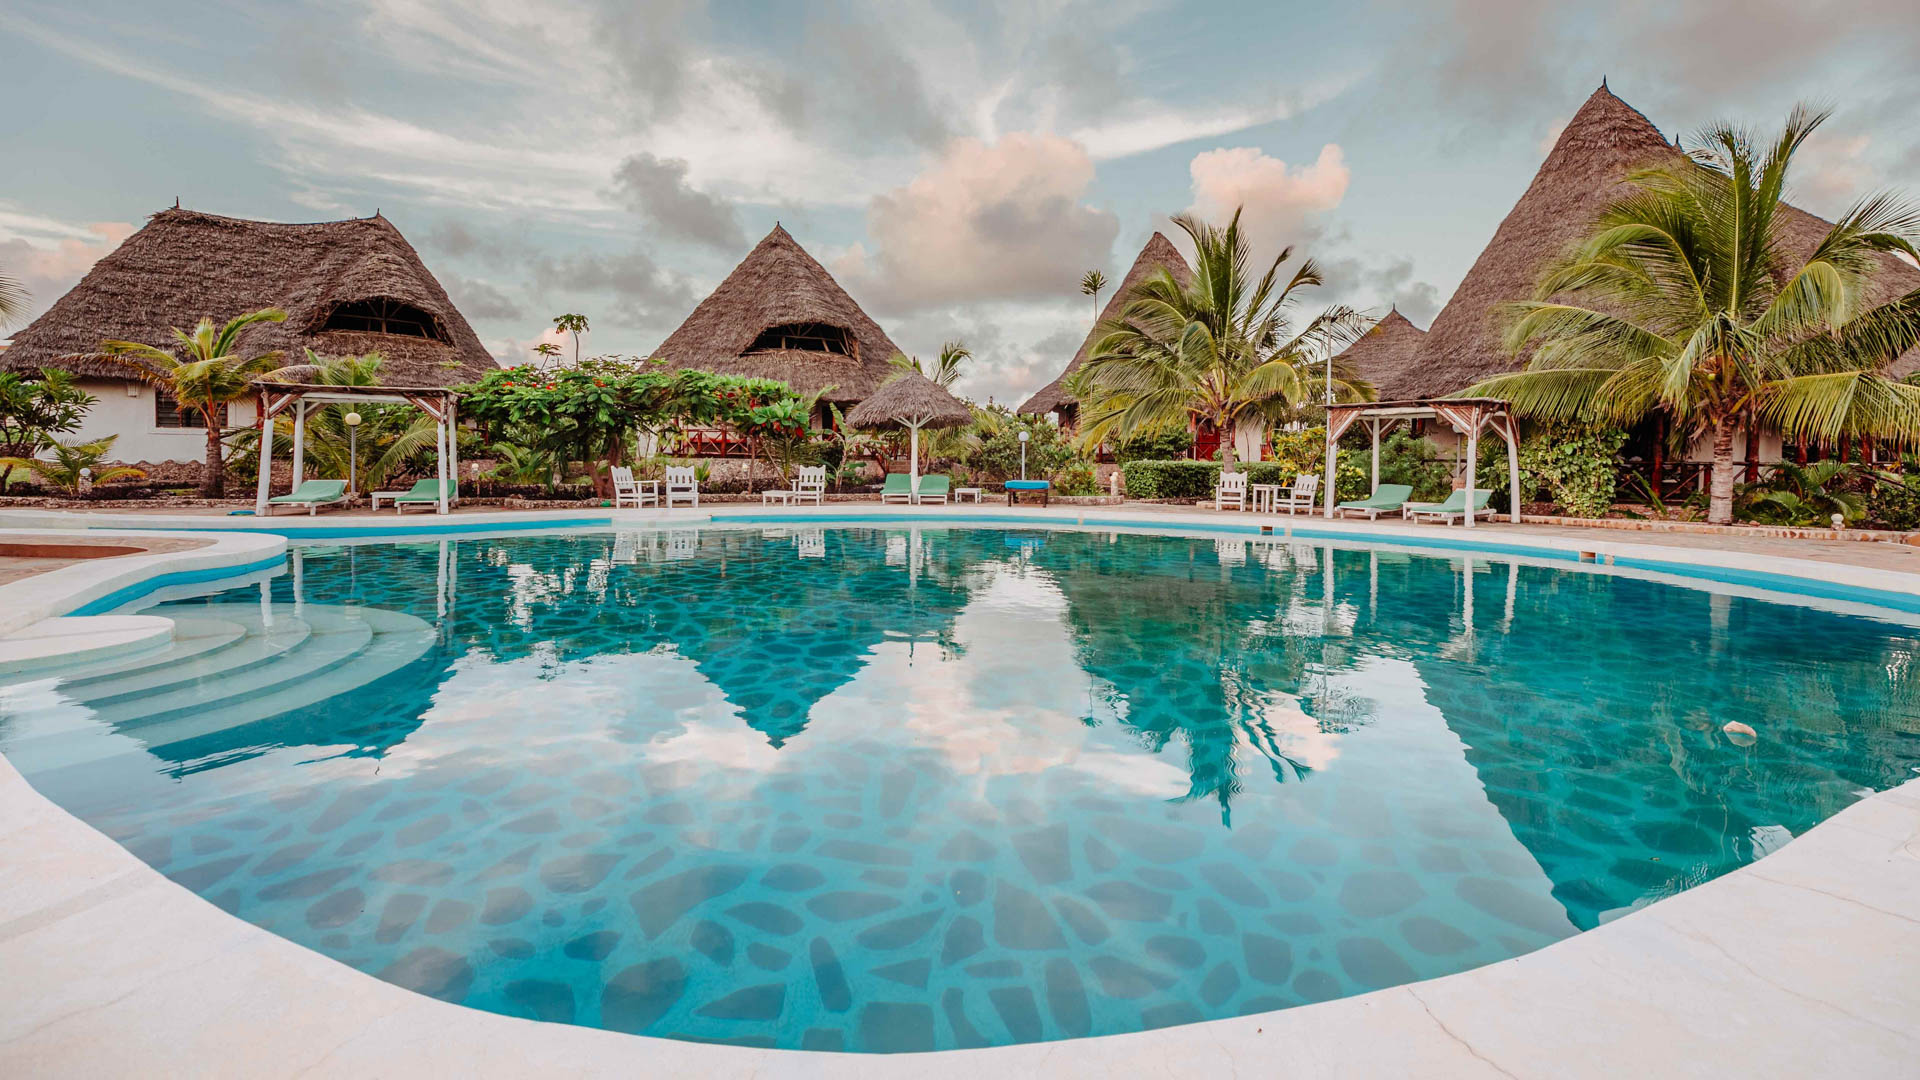 Take a relaxing dip in Malaika Beach Villas' swimming pool, the perfect antidote to a busy day in the city